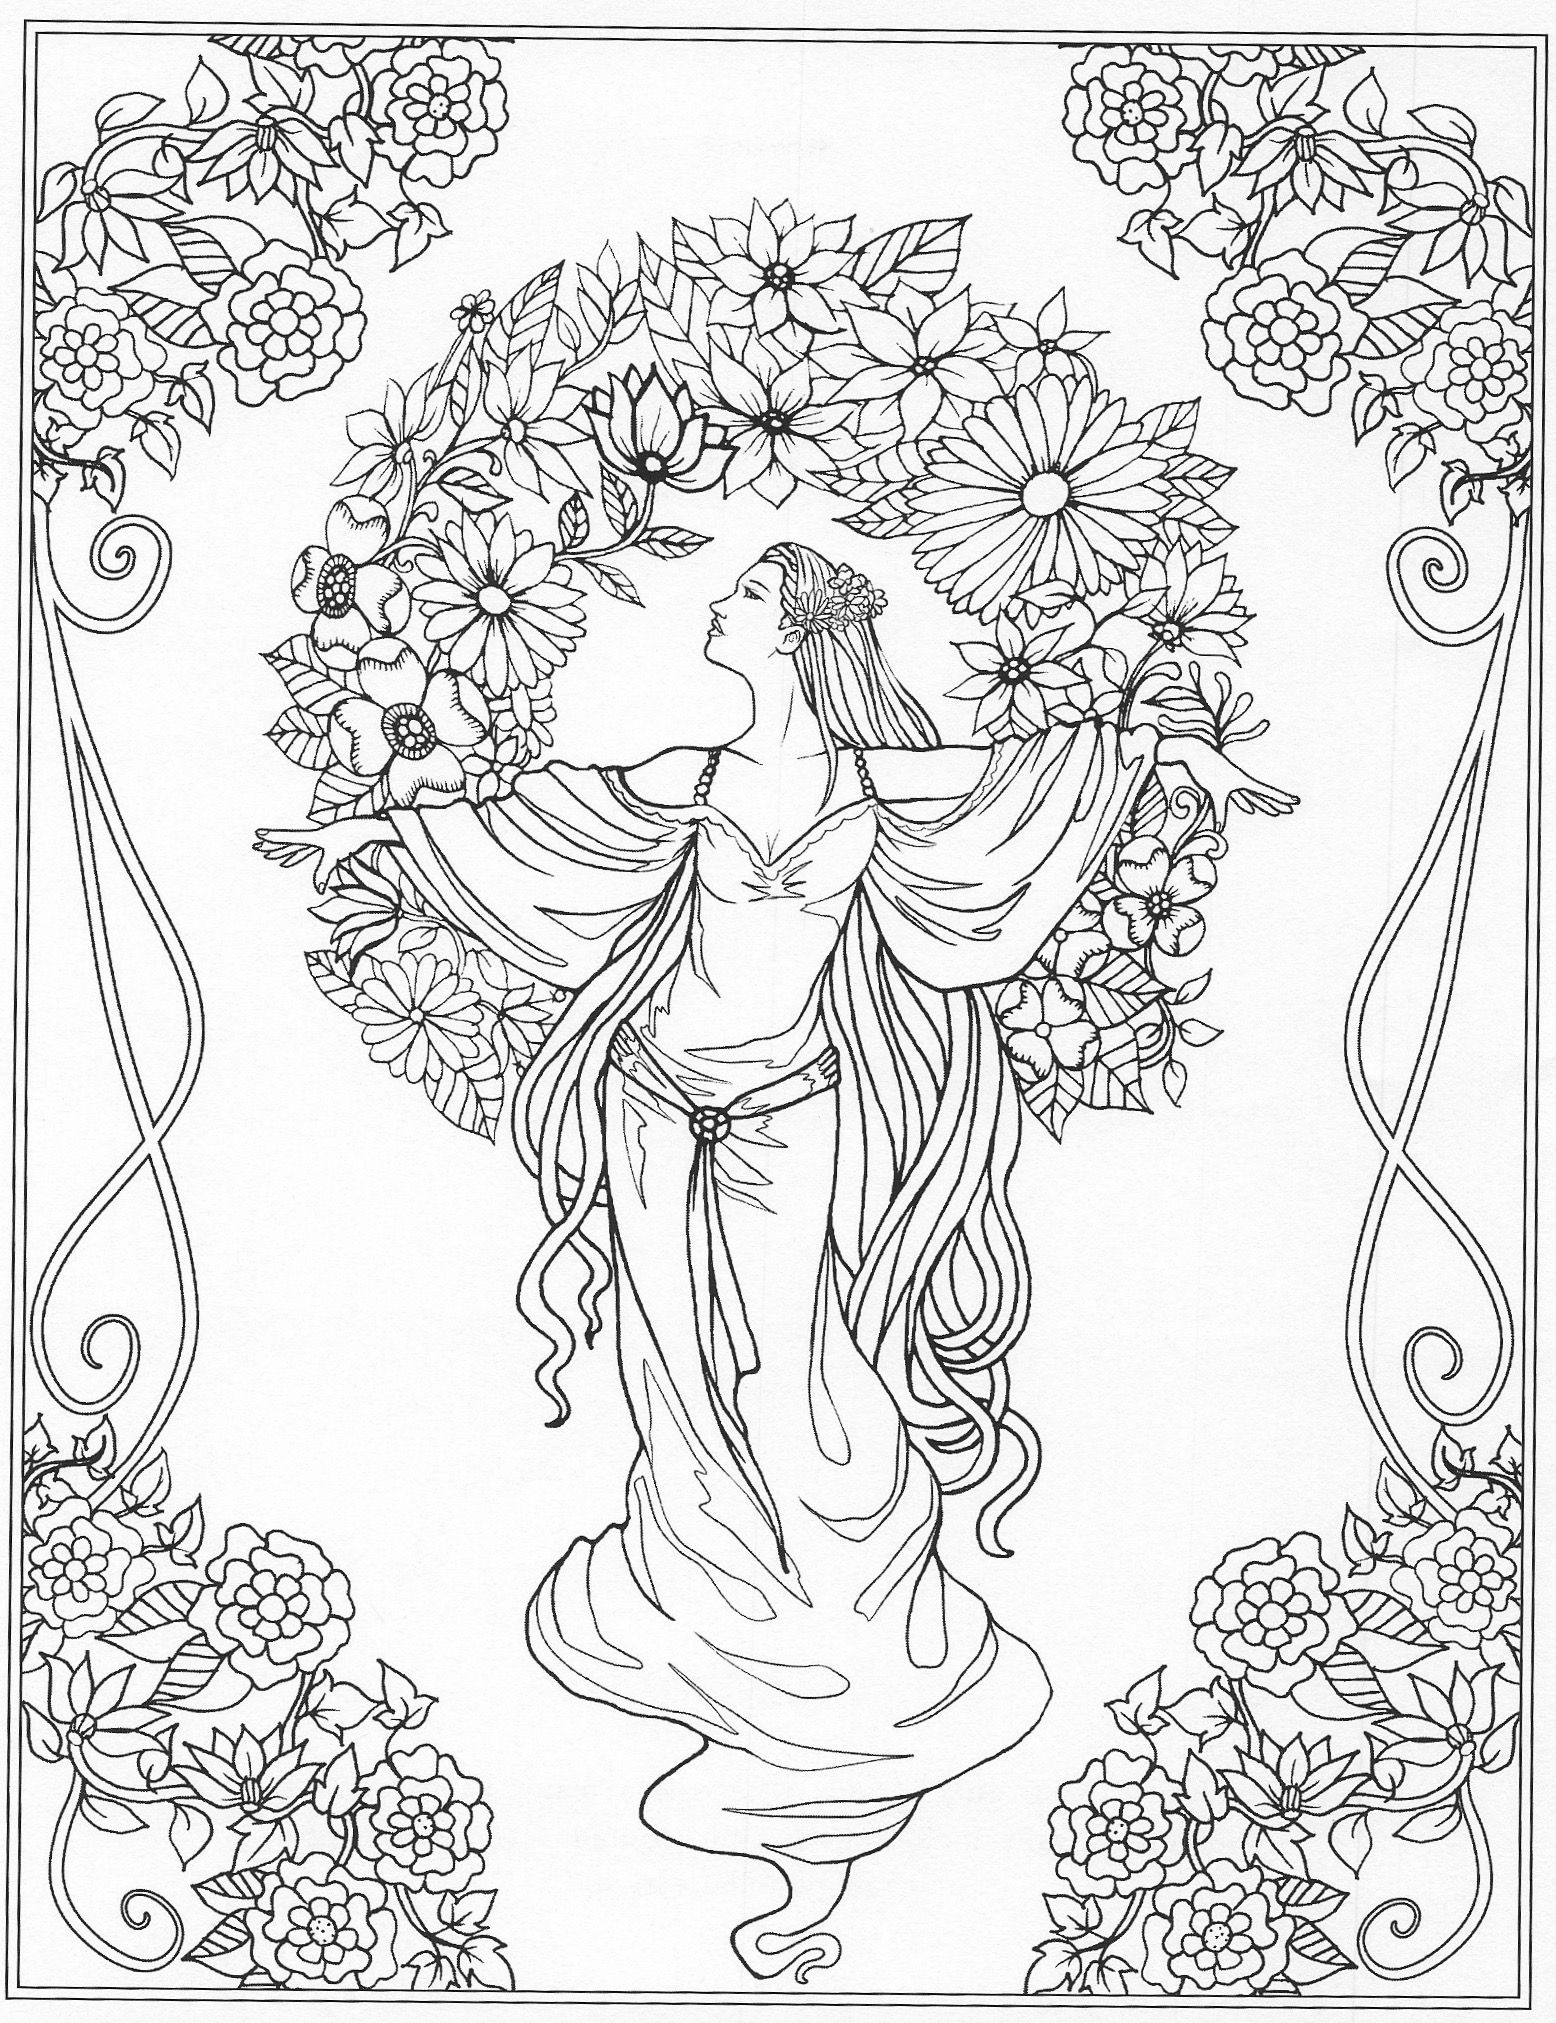 Beautiful Flowers Coloring Pages Beautiful lady amongst flowers coloring page Beautiful